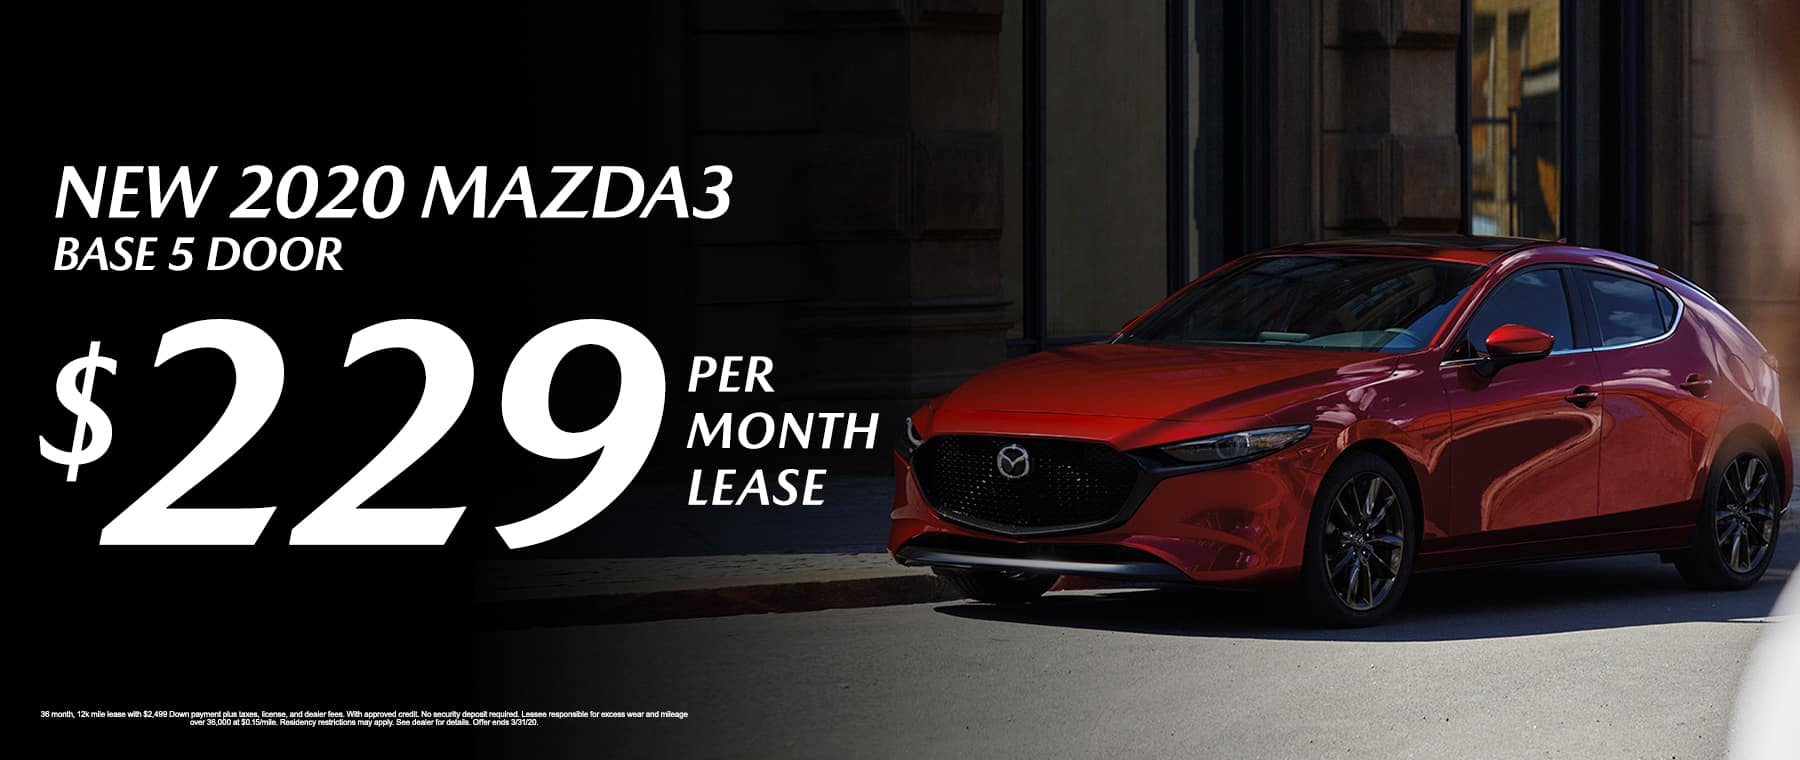 New 2020 Mazda3 Base 5 Door Lease for $229/mo.